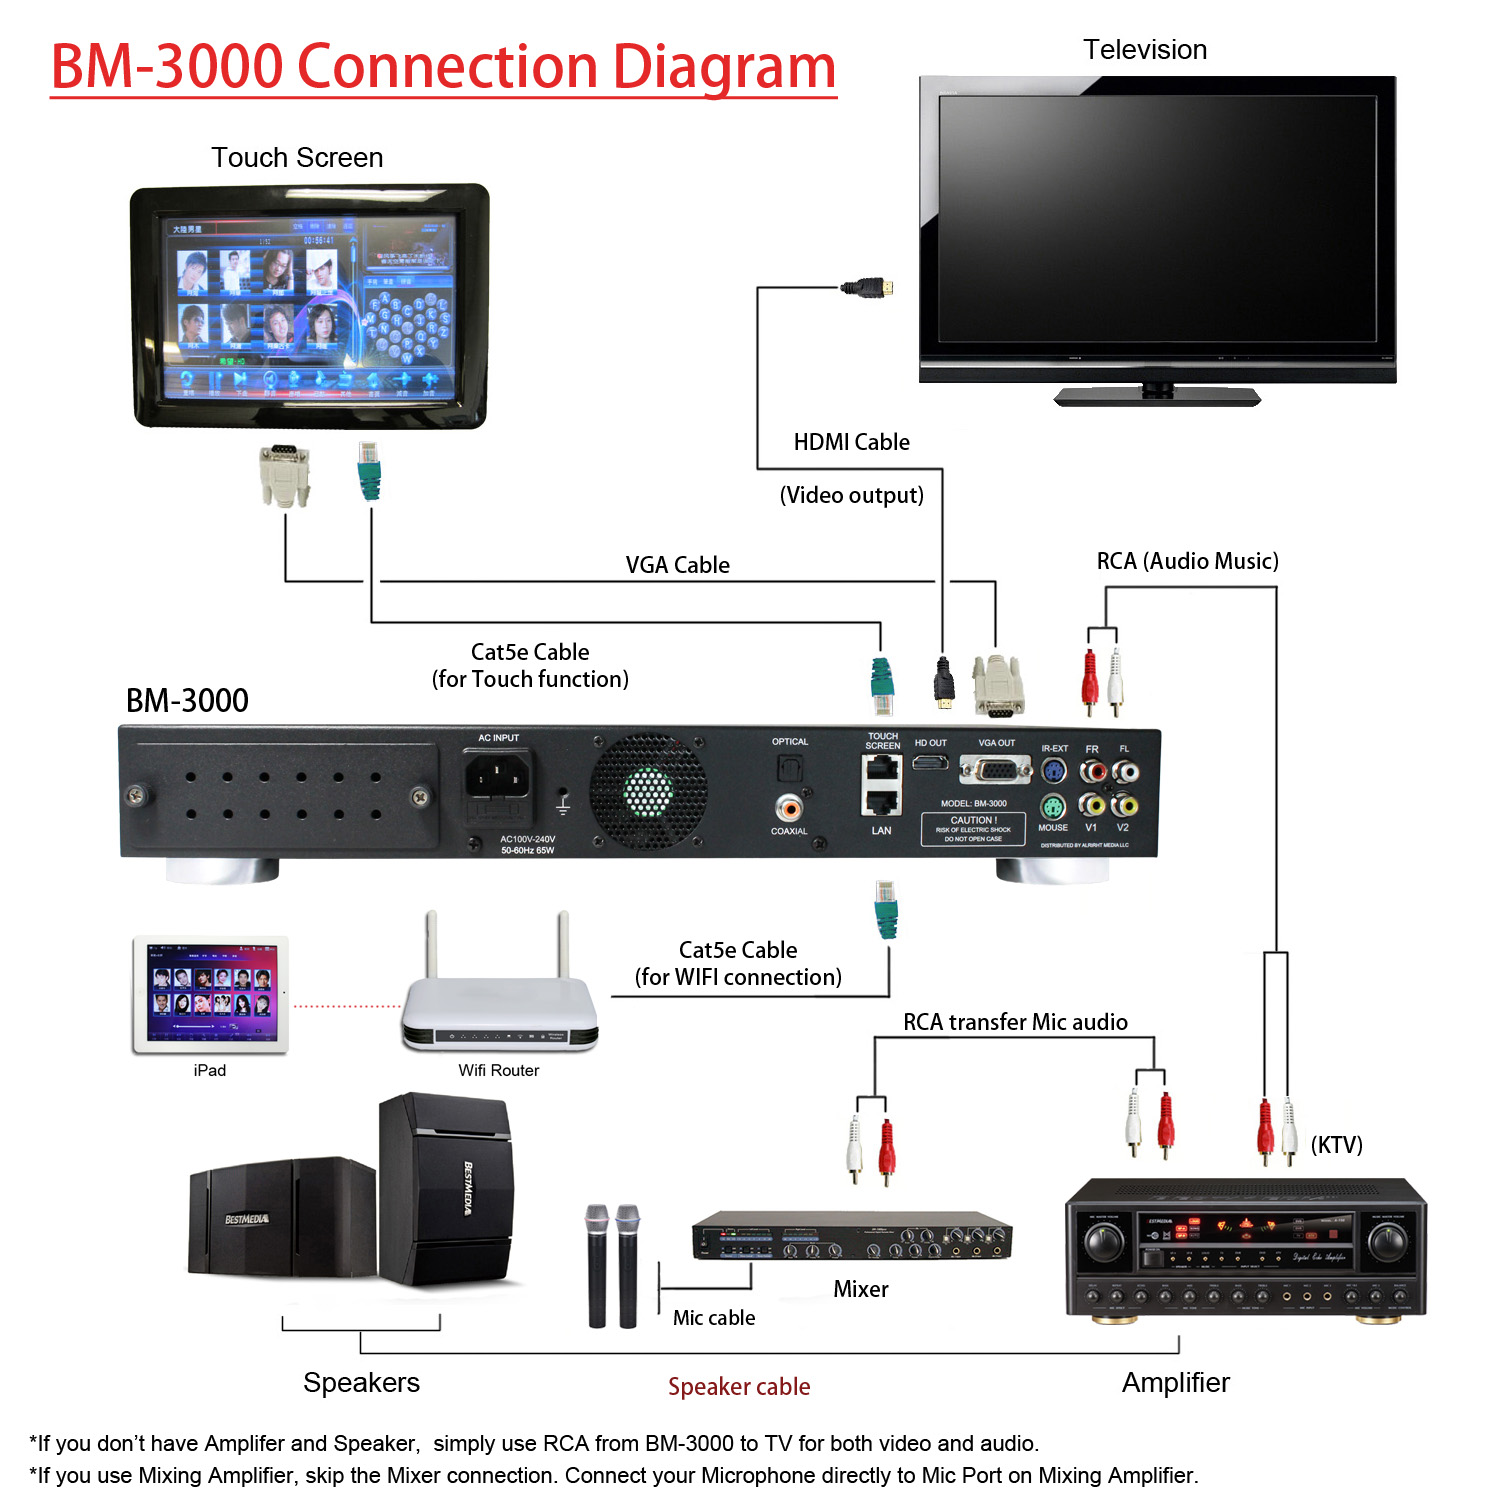 bm 3000 connection diagram best media tech support. Black Bedroom Furniture Sets. Home Design Ideas